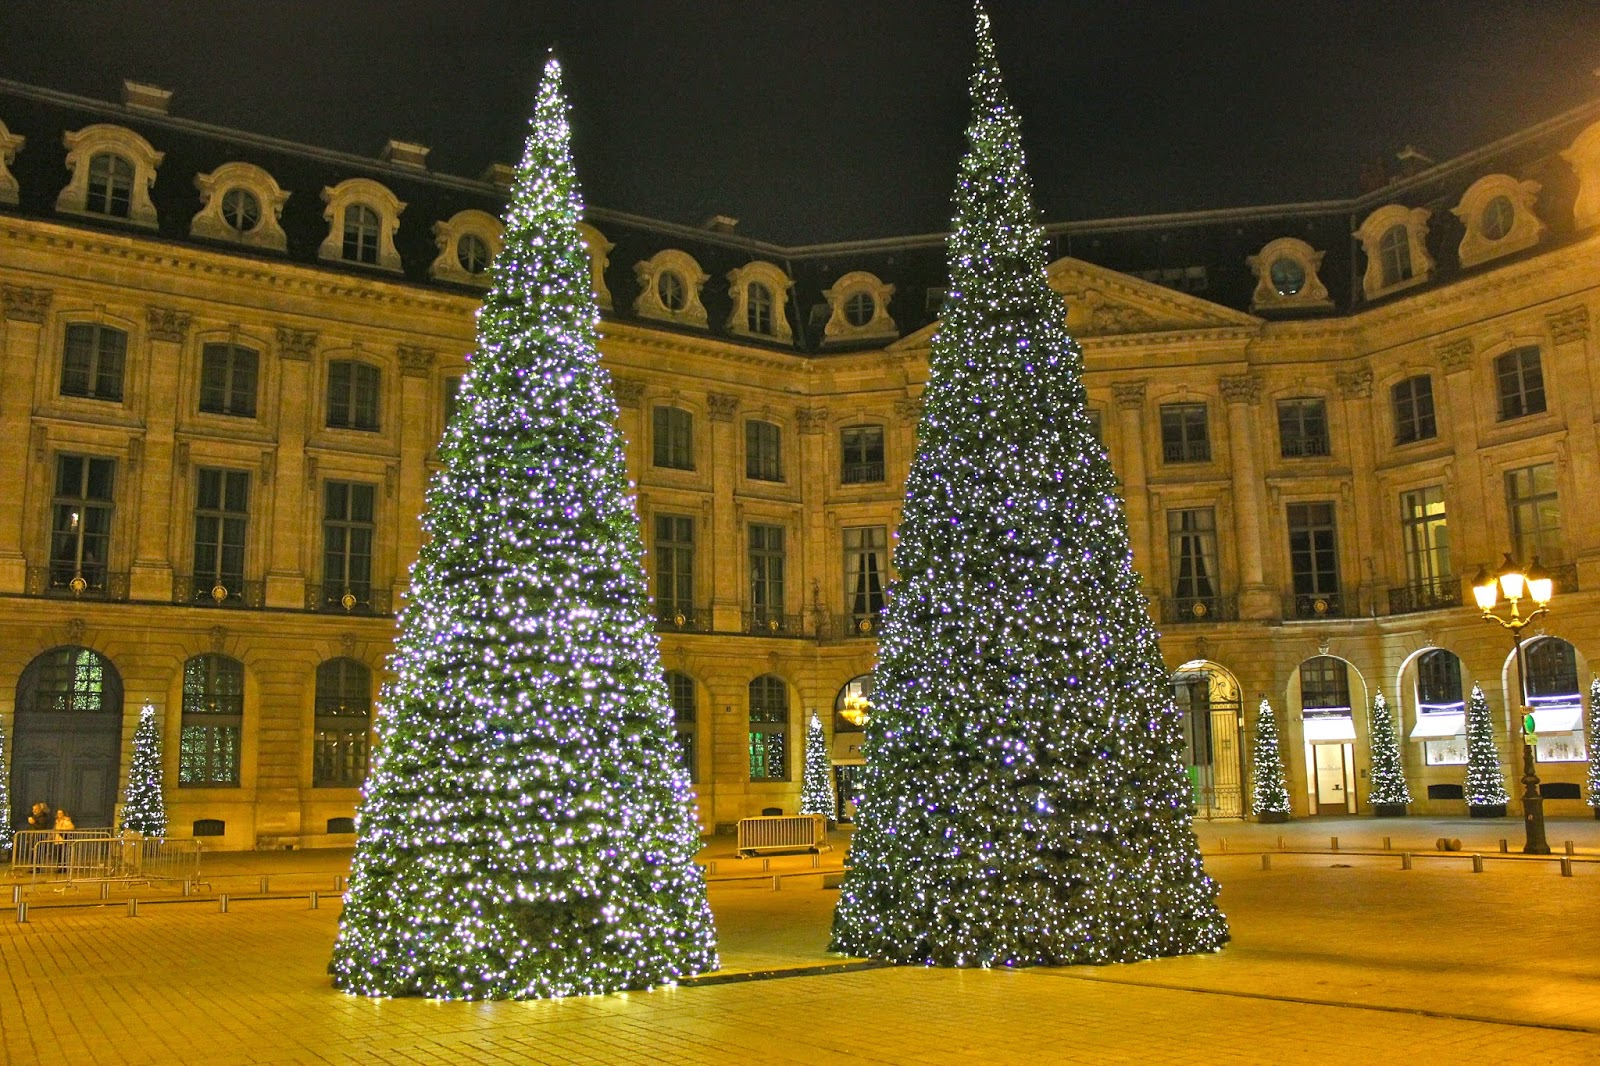 Esther paris illuminations place vendome 2014 - Illumination a paris ...